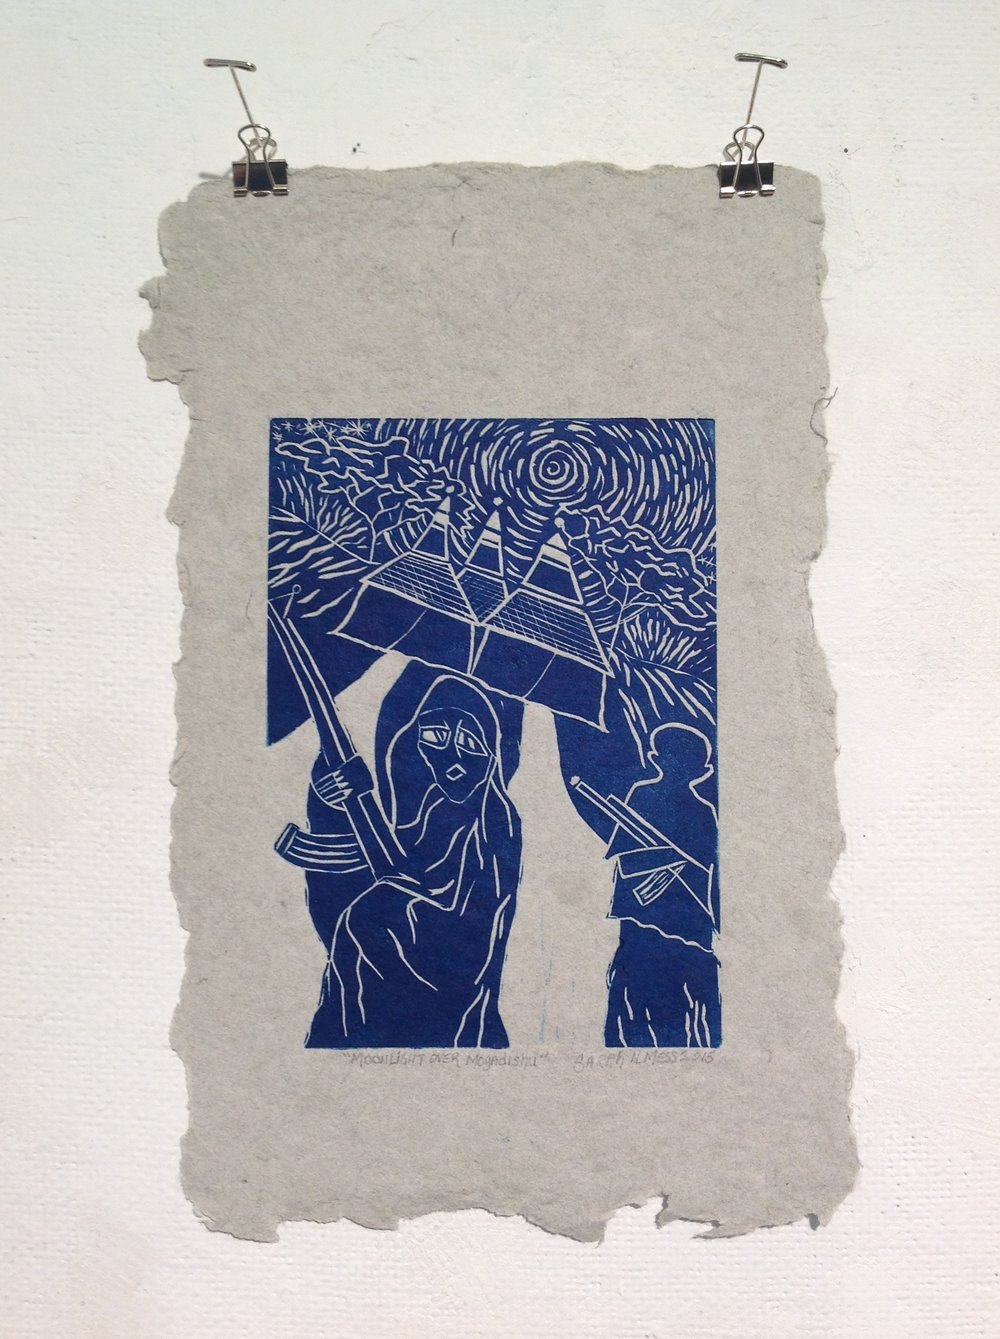 """Moonlight Over Mogadishu""     Sarah Mess,  2015    Linocut on handmade paper from military uniforms"